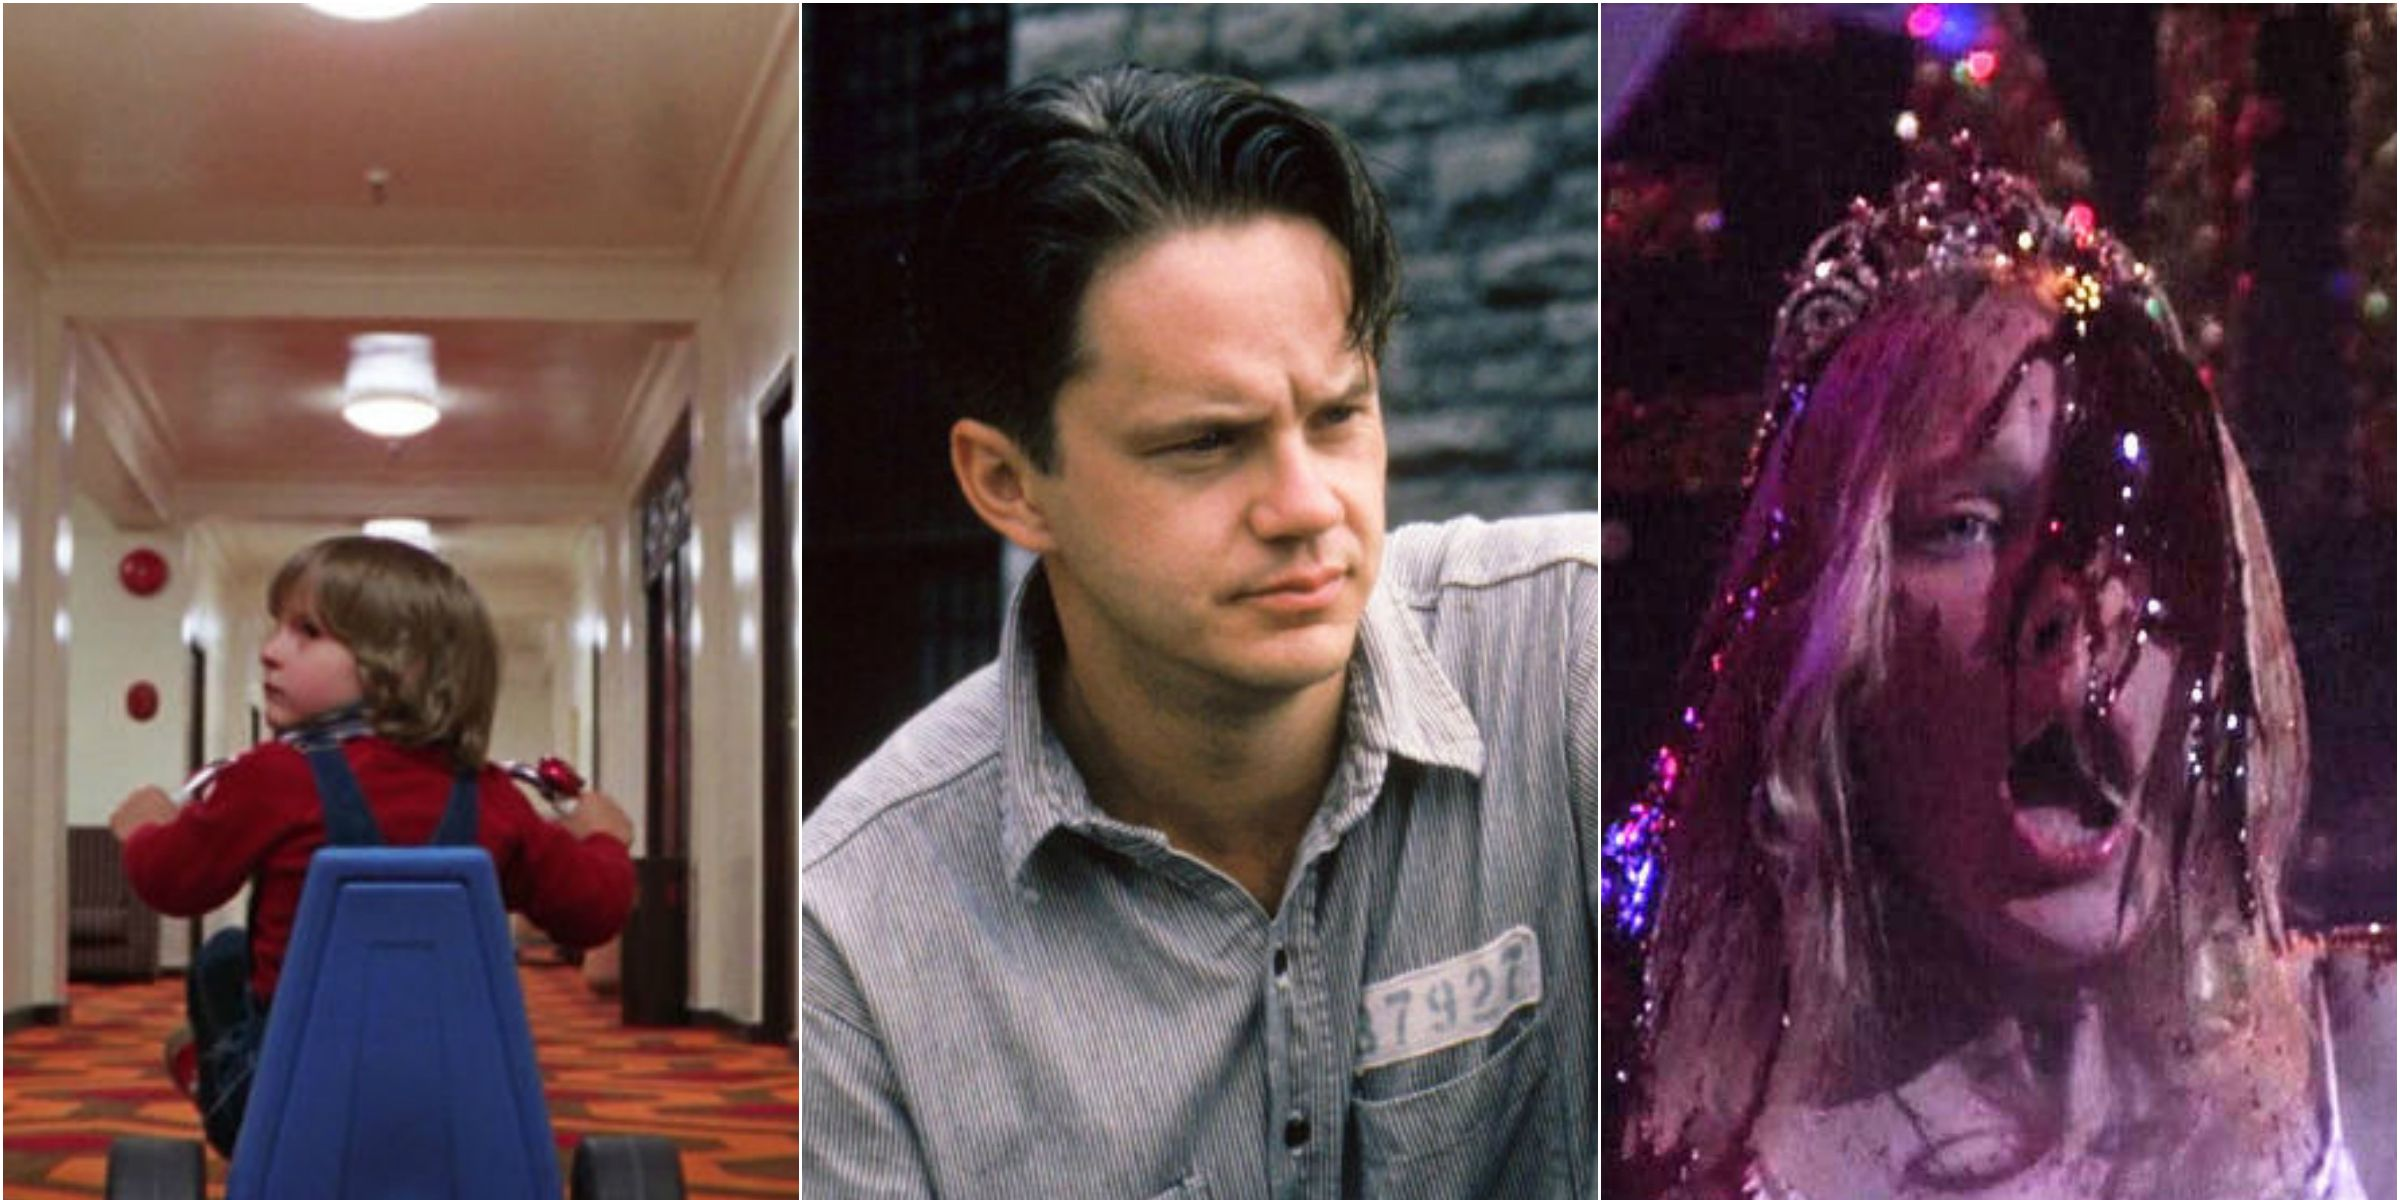 The Shining, The Shawshank Redemption, Carrie